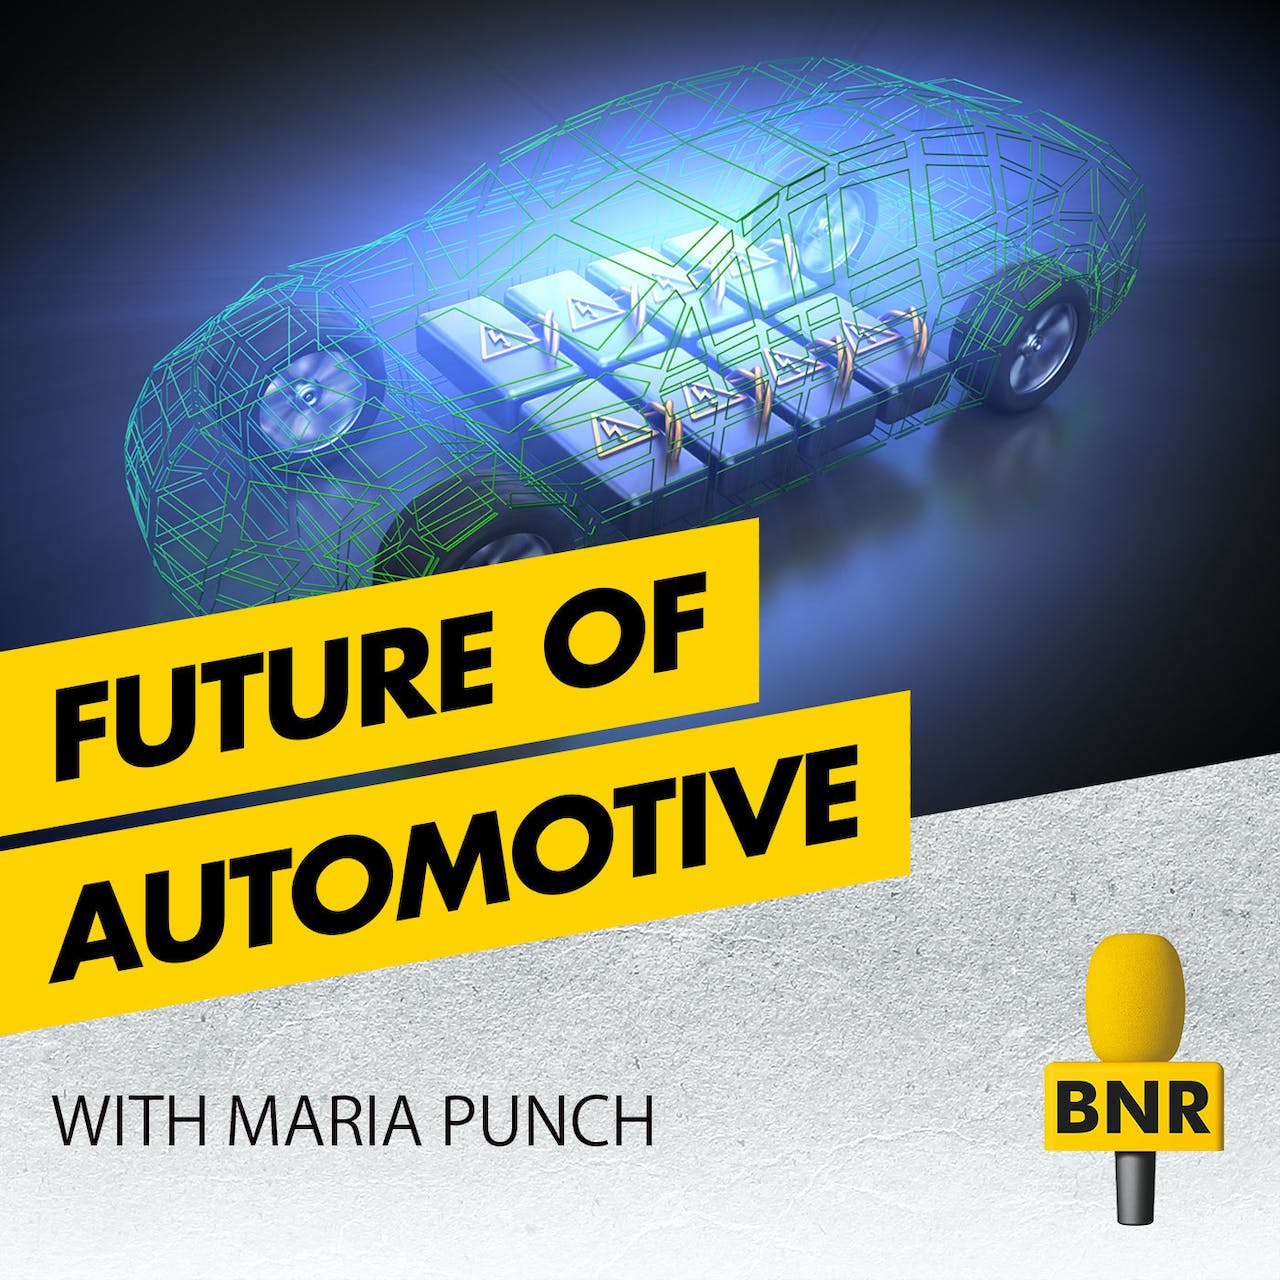 Future of Automotive is a new podcast of BNR Nieuwsradio, focussing on the way our means of transportation will change the coming decades